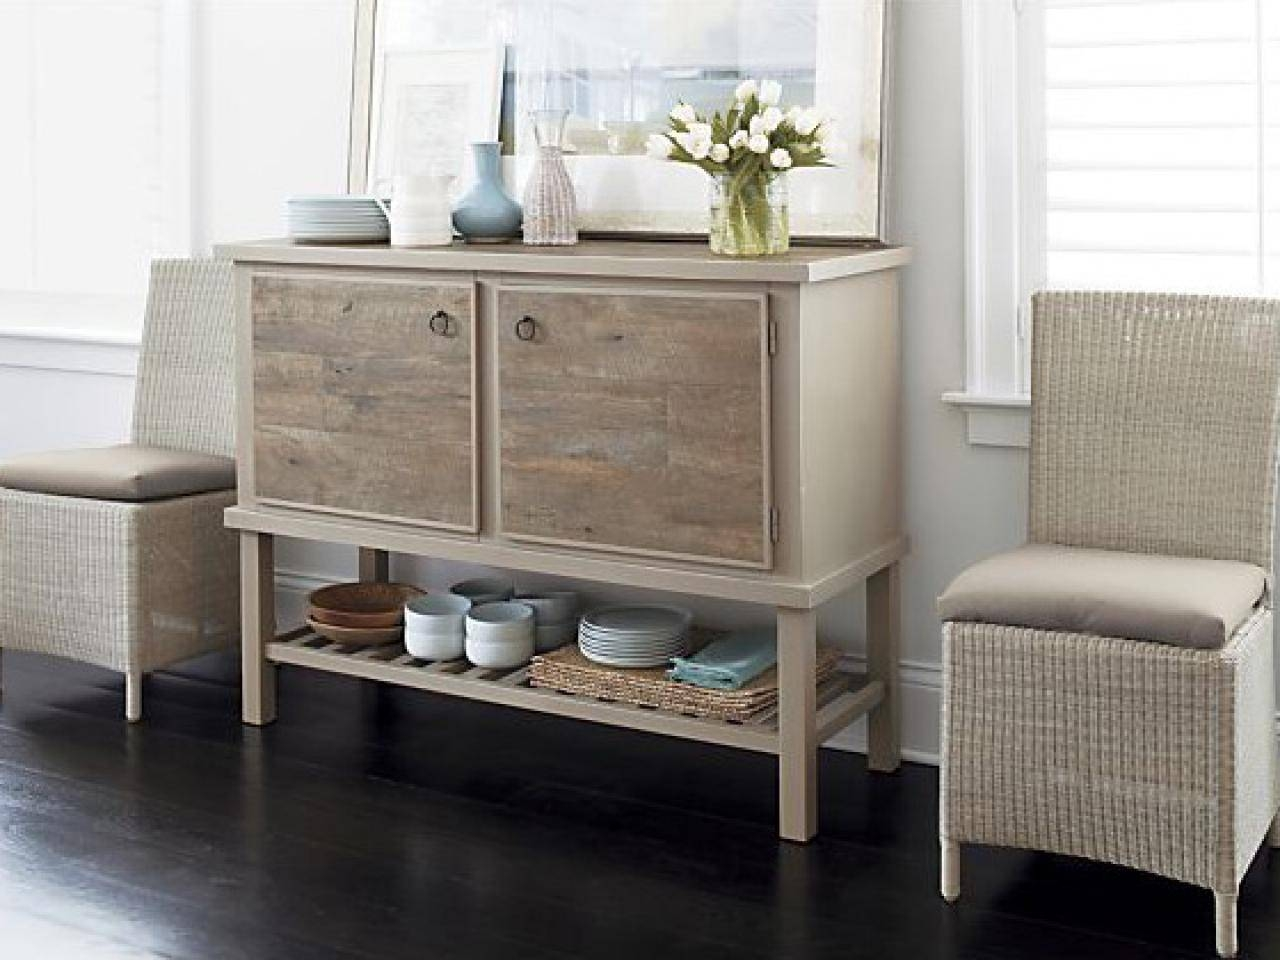 How To Distress Furniture | Hgtv For Distressed Wood Sideboard (View 4 of 20)